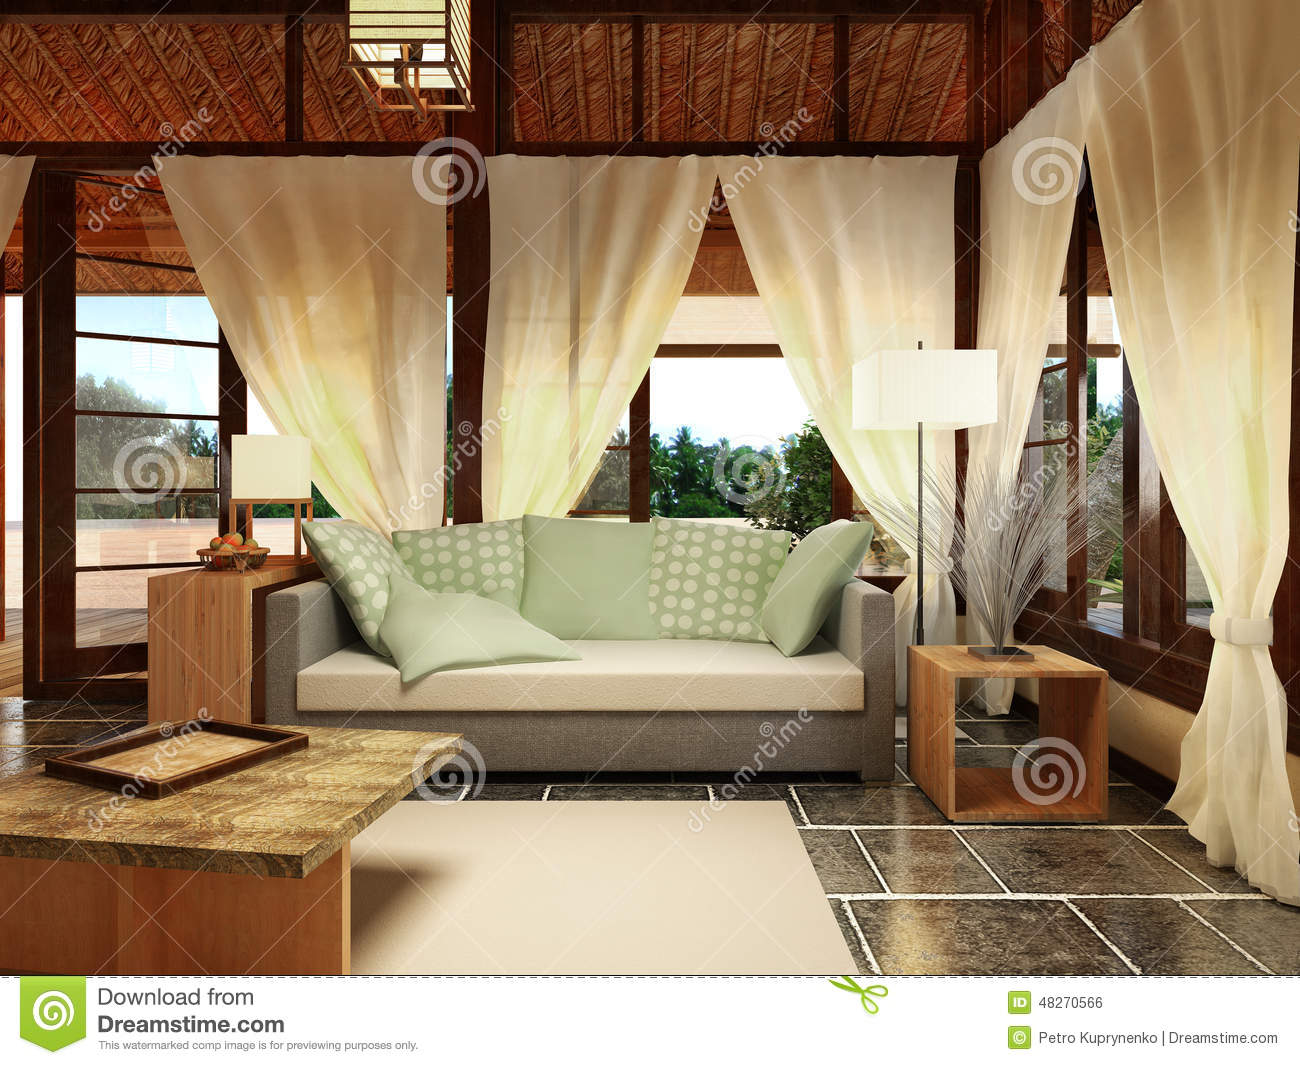 Bungalow Interior Design Stock Illustration Image 48270566